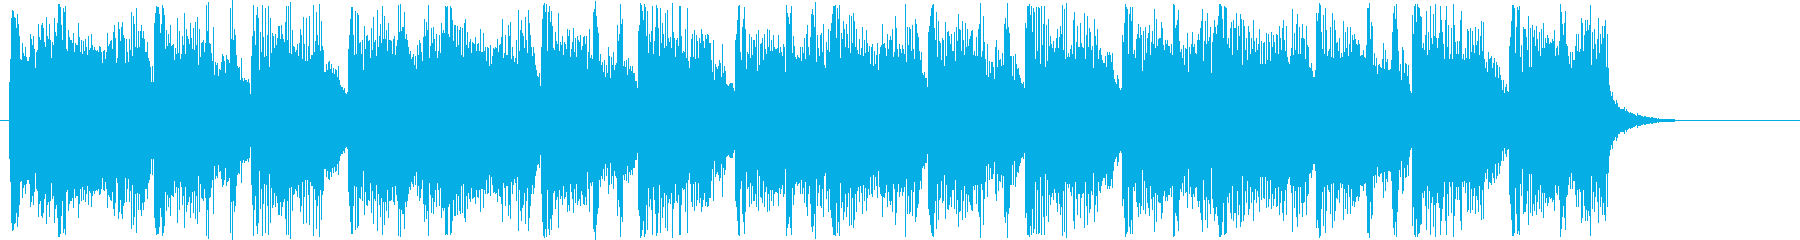 Trumpet song with a comical atmosphere's reproduced waveform